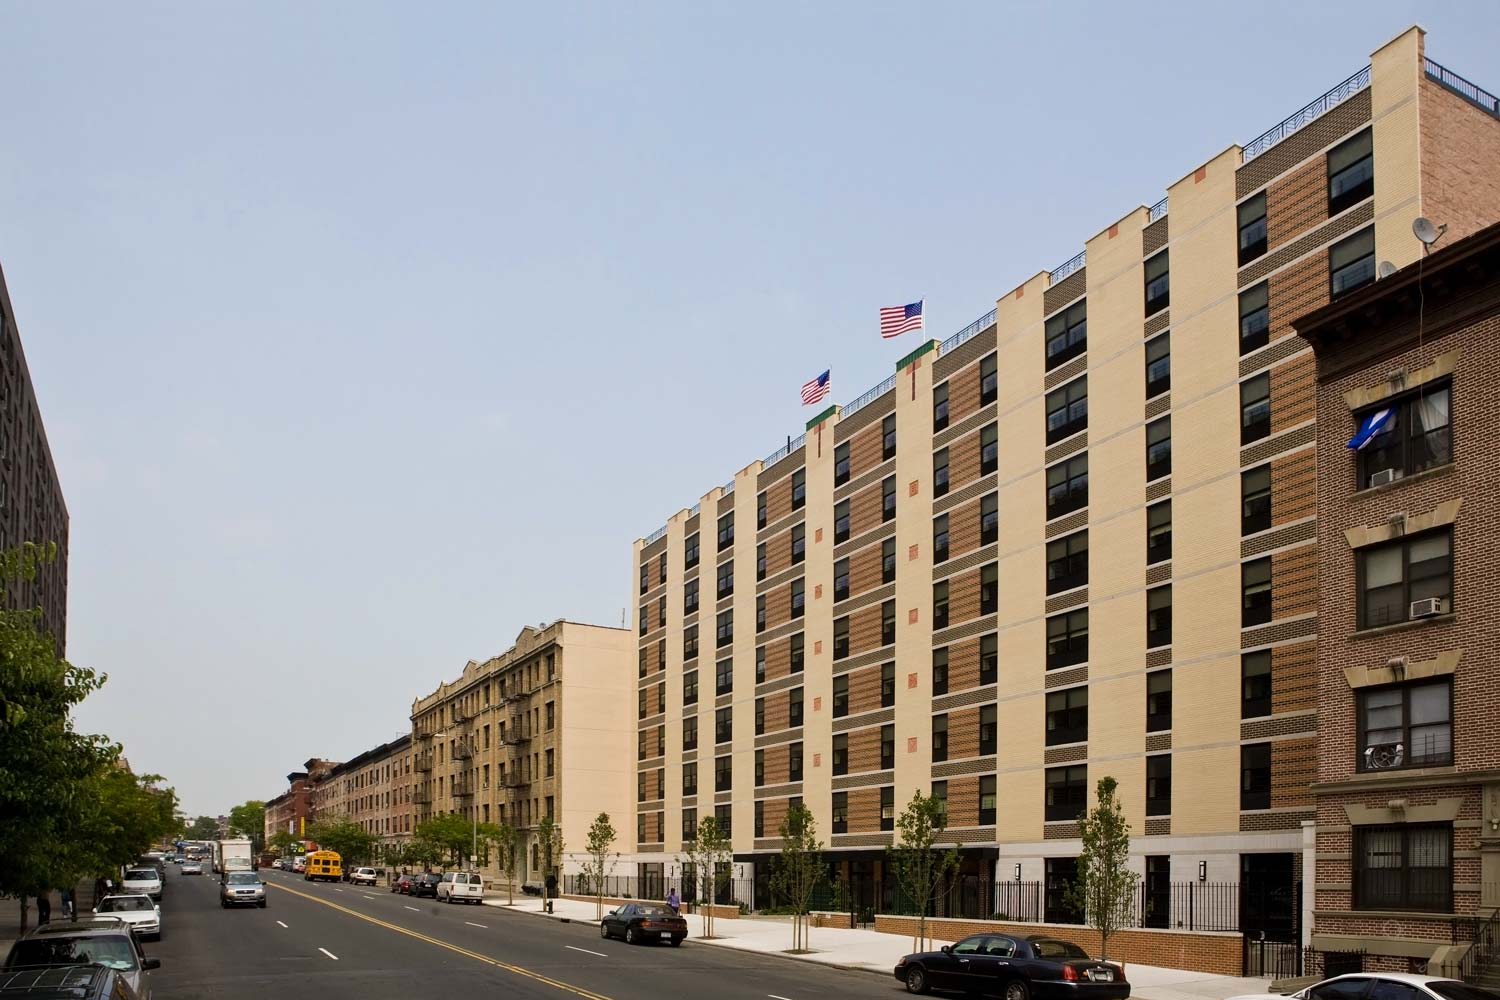 The building's Art Deco design revives the historical flavor of the Crotona section of the Bronx.